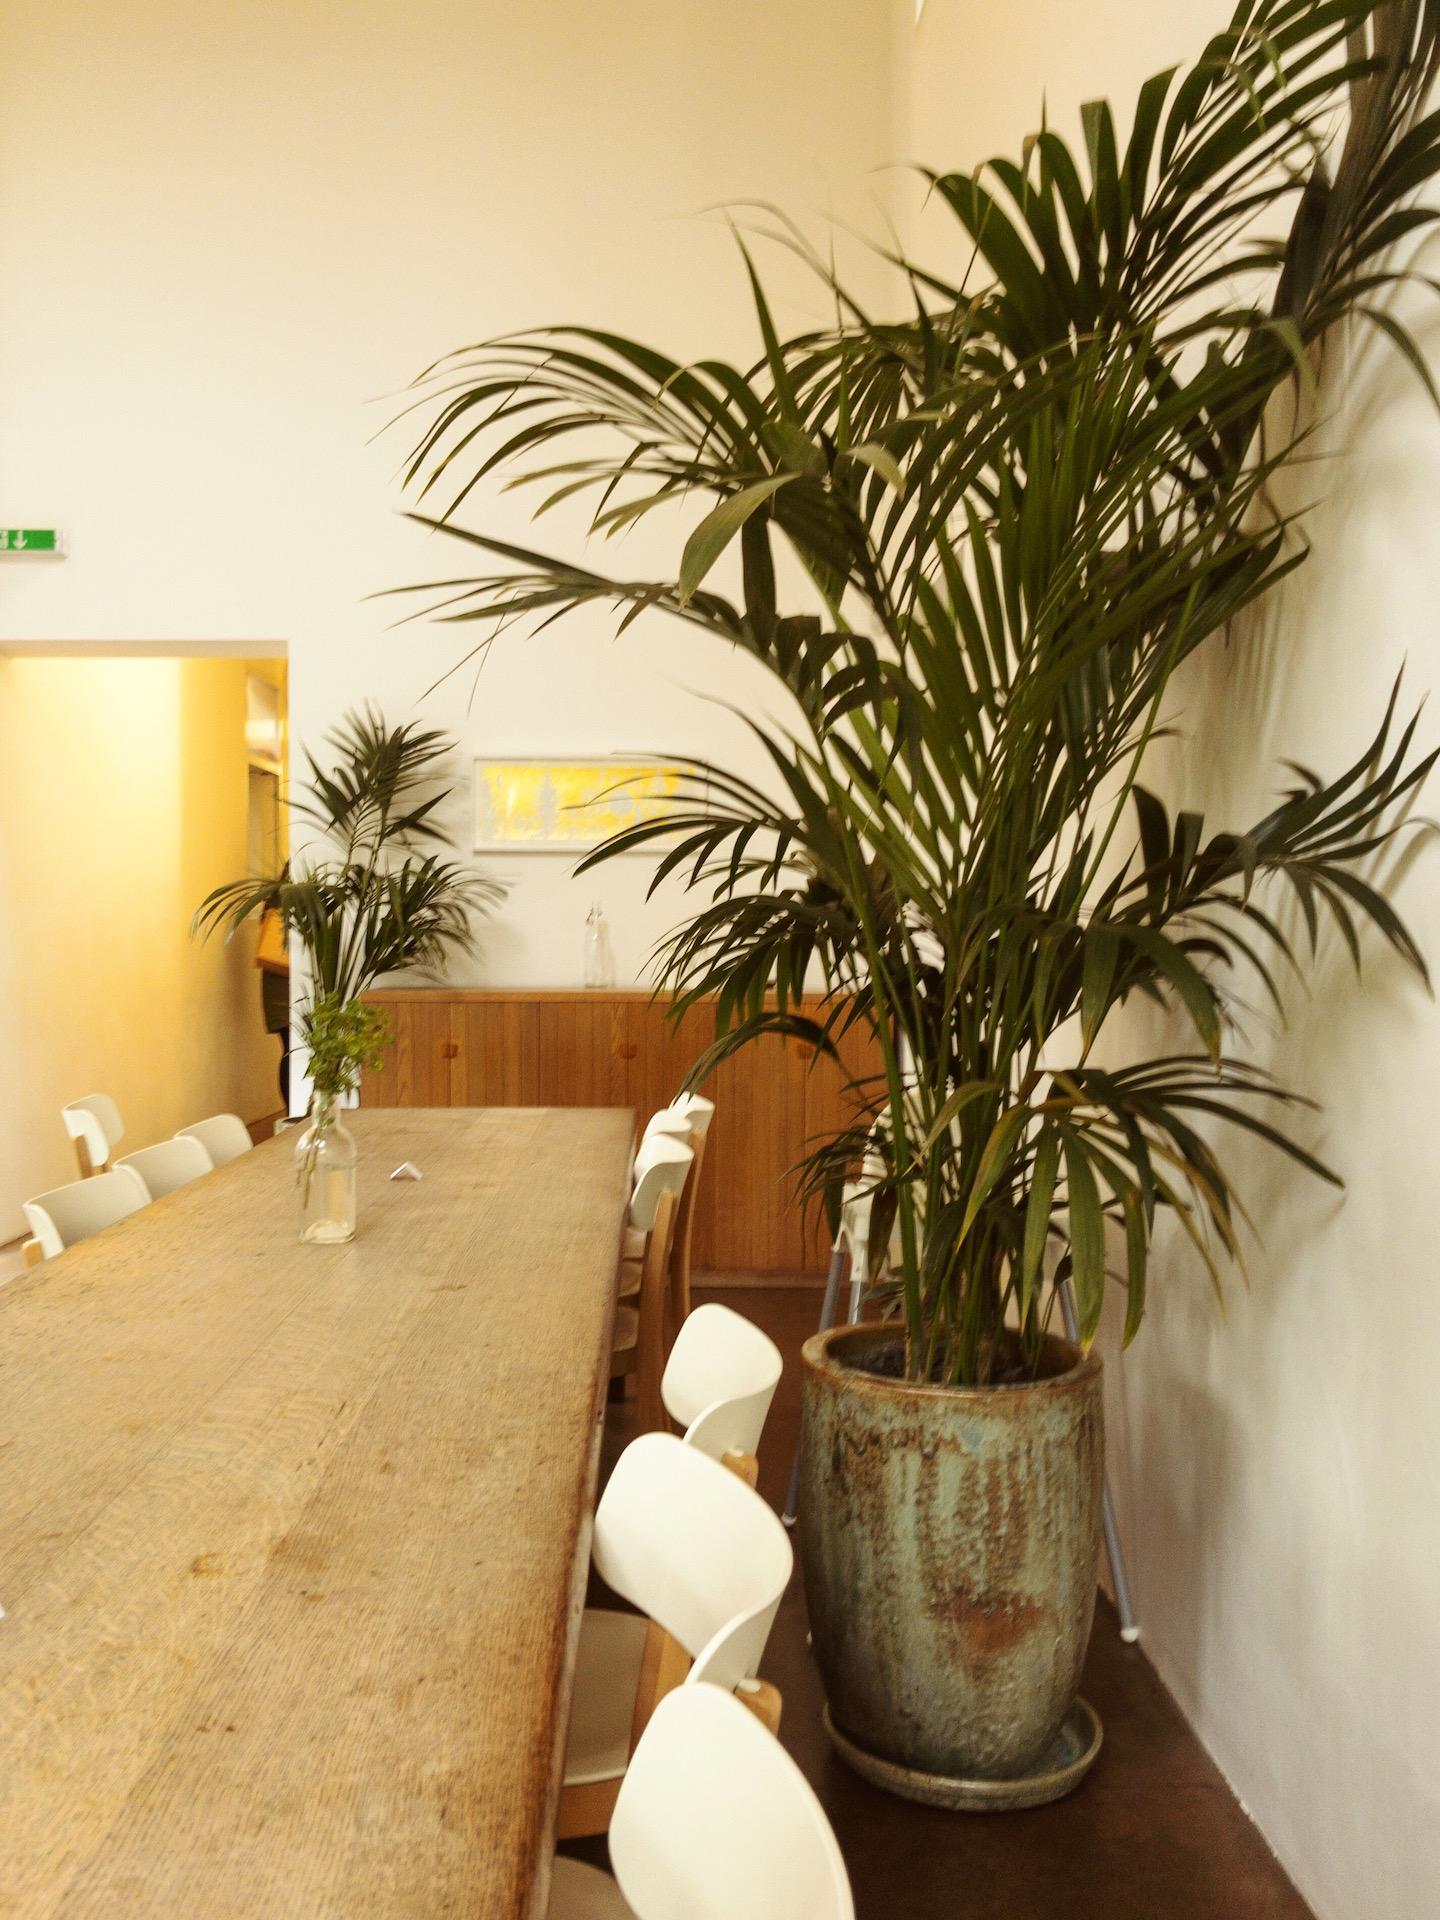 South London Gallery Crane's Kitchen Cafe - What Dominika Did.JPG